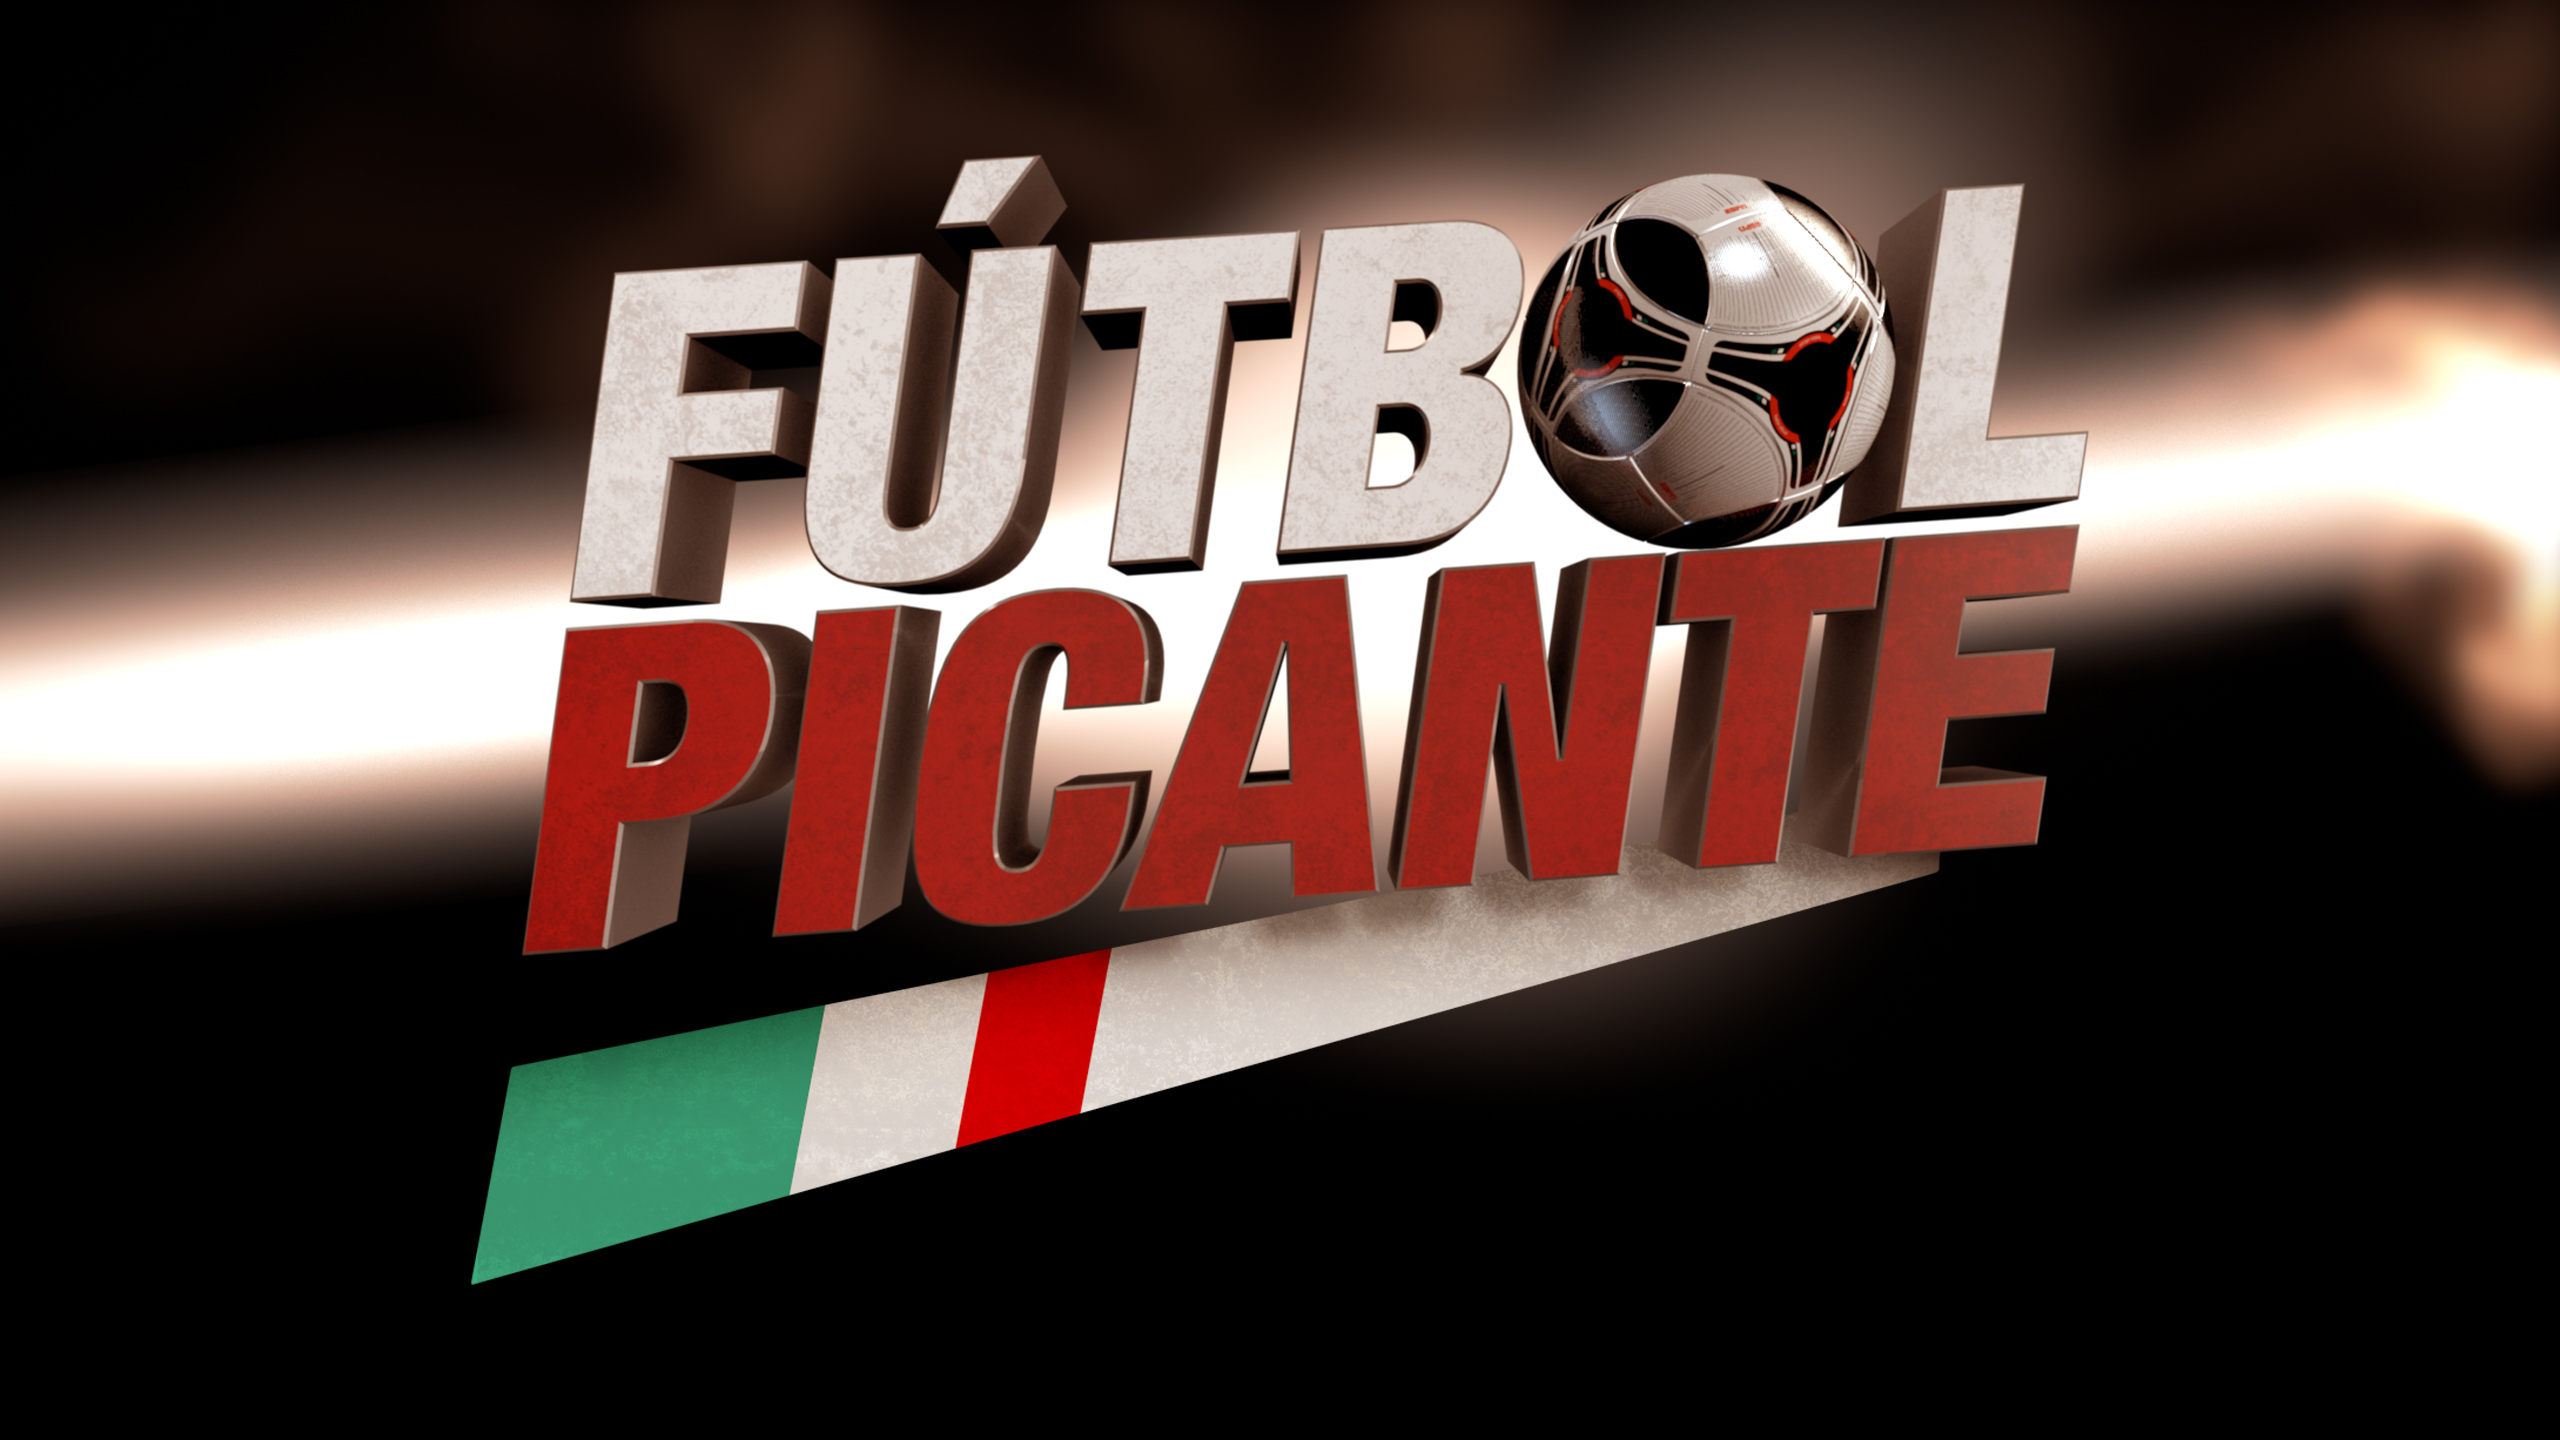 Fútbol Picante (Joined in Progress)